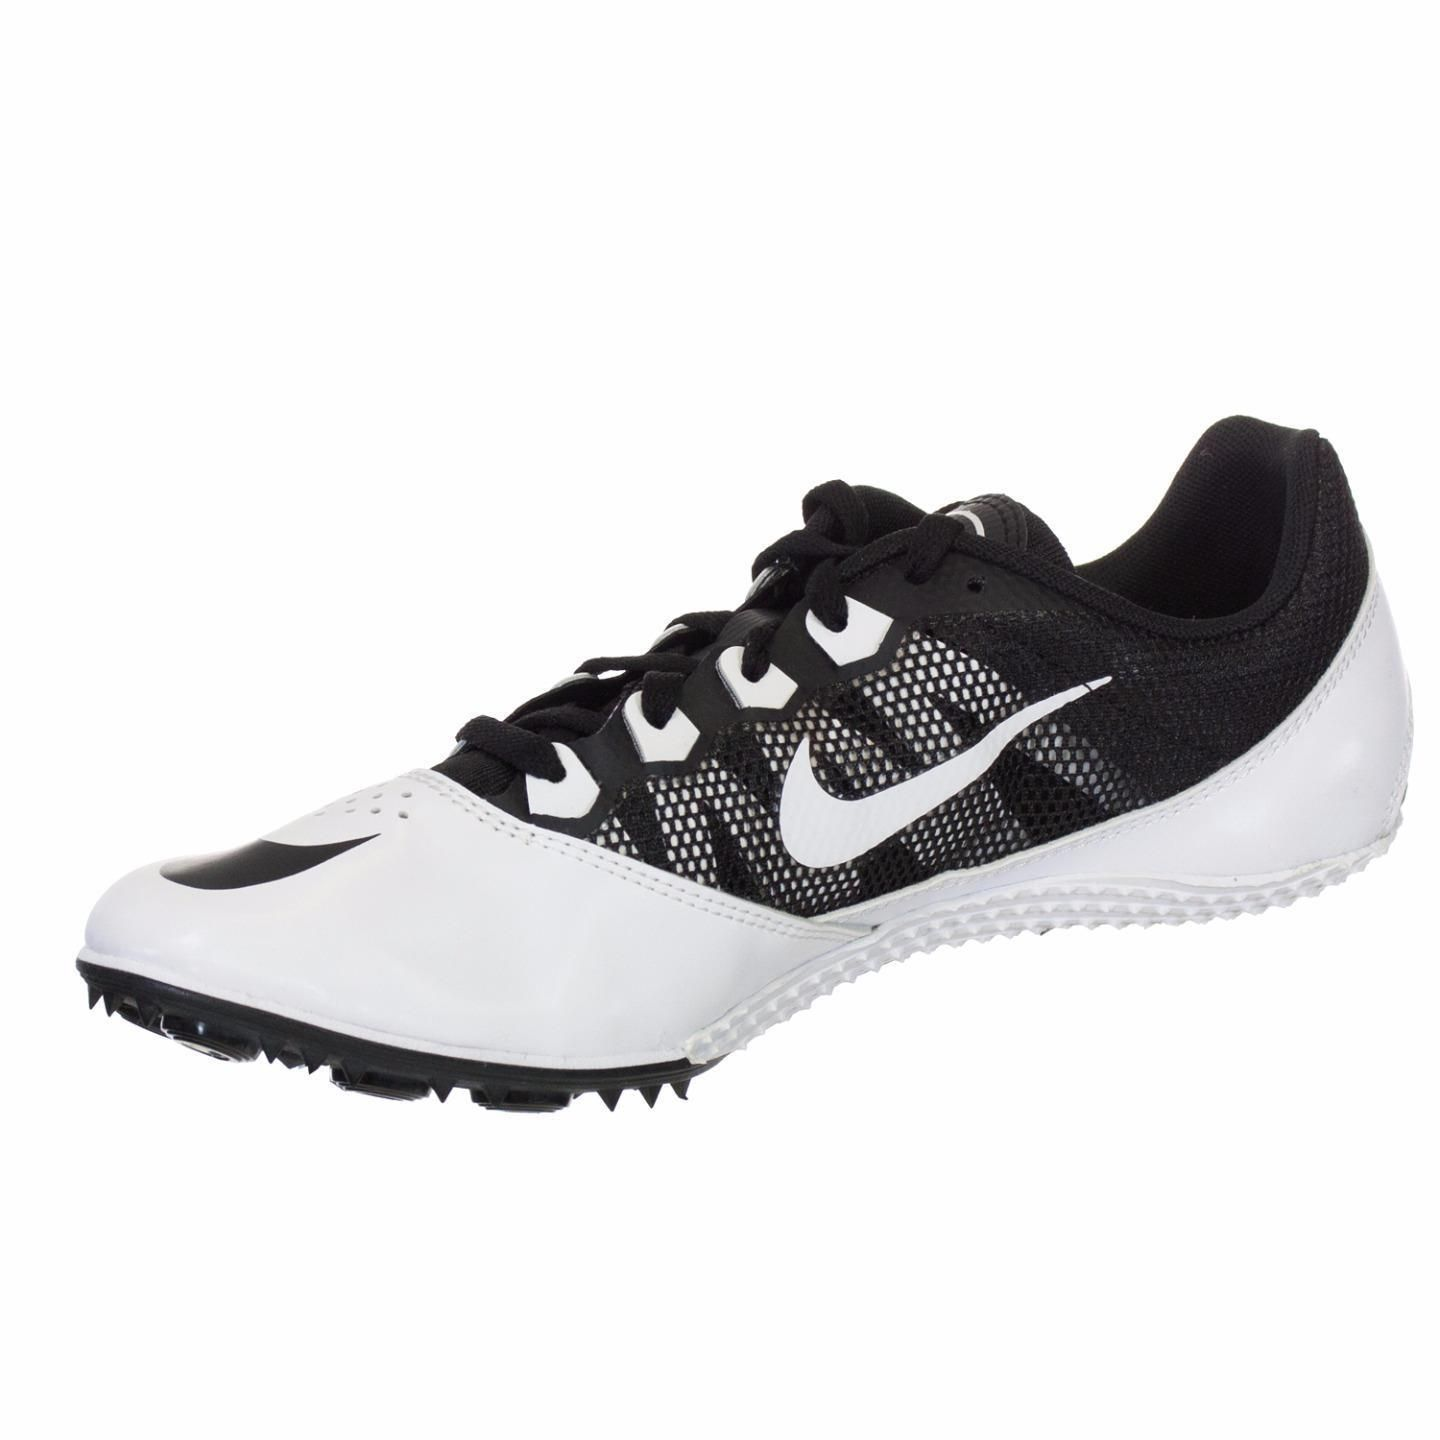 f8bb31ef1ae Nike Unisex Zoom Rival S7 Black and White Spiked Track Shoe (S7 ...